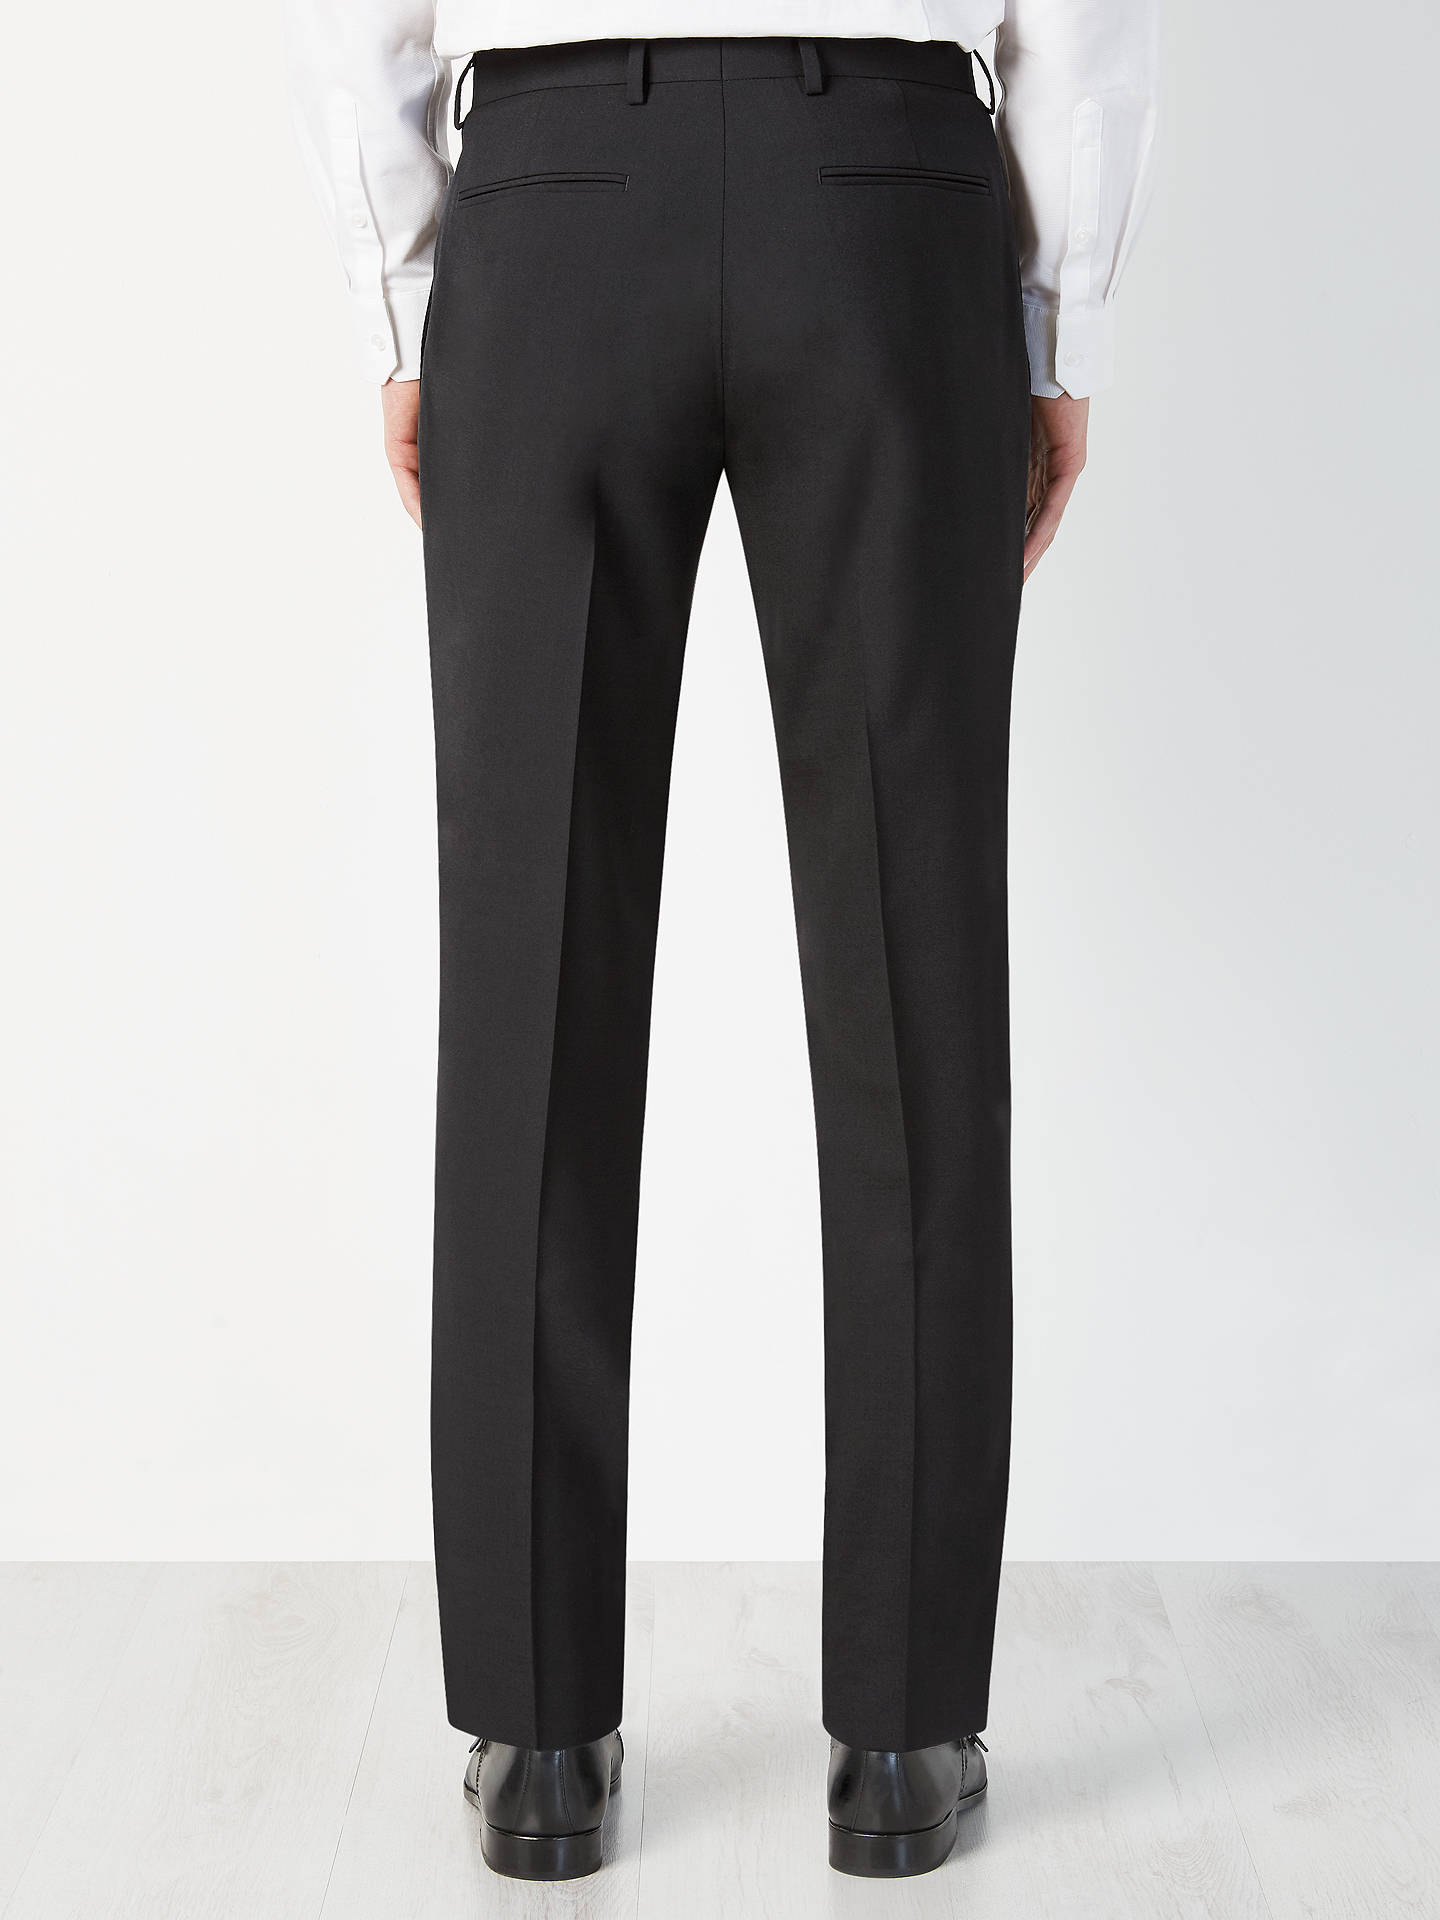 BuyKin Enno Slim Fit Stretch Plainweave Suit Trousers, Black, 30S Online at johnlewis.com